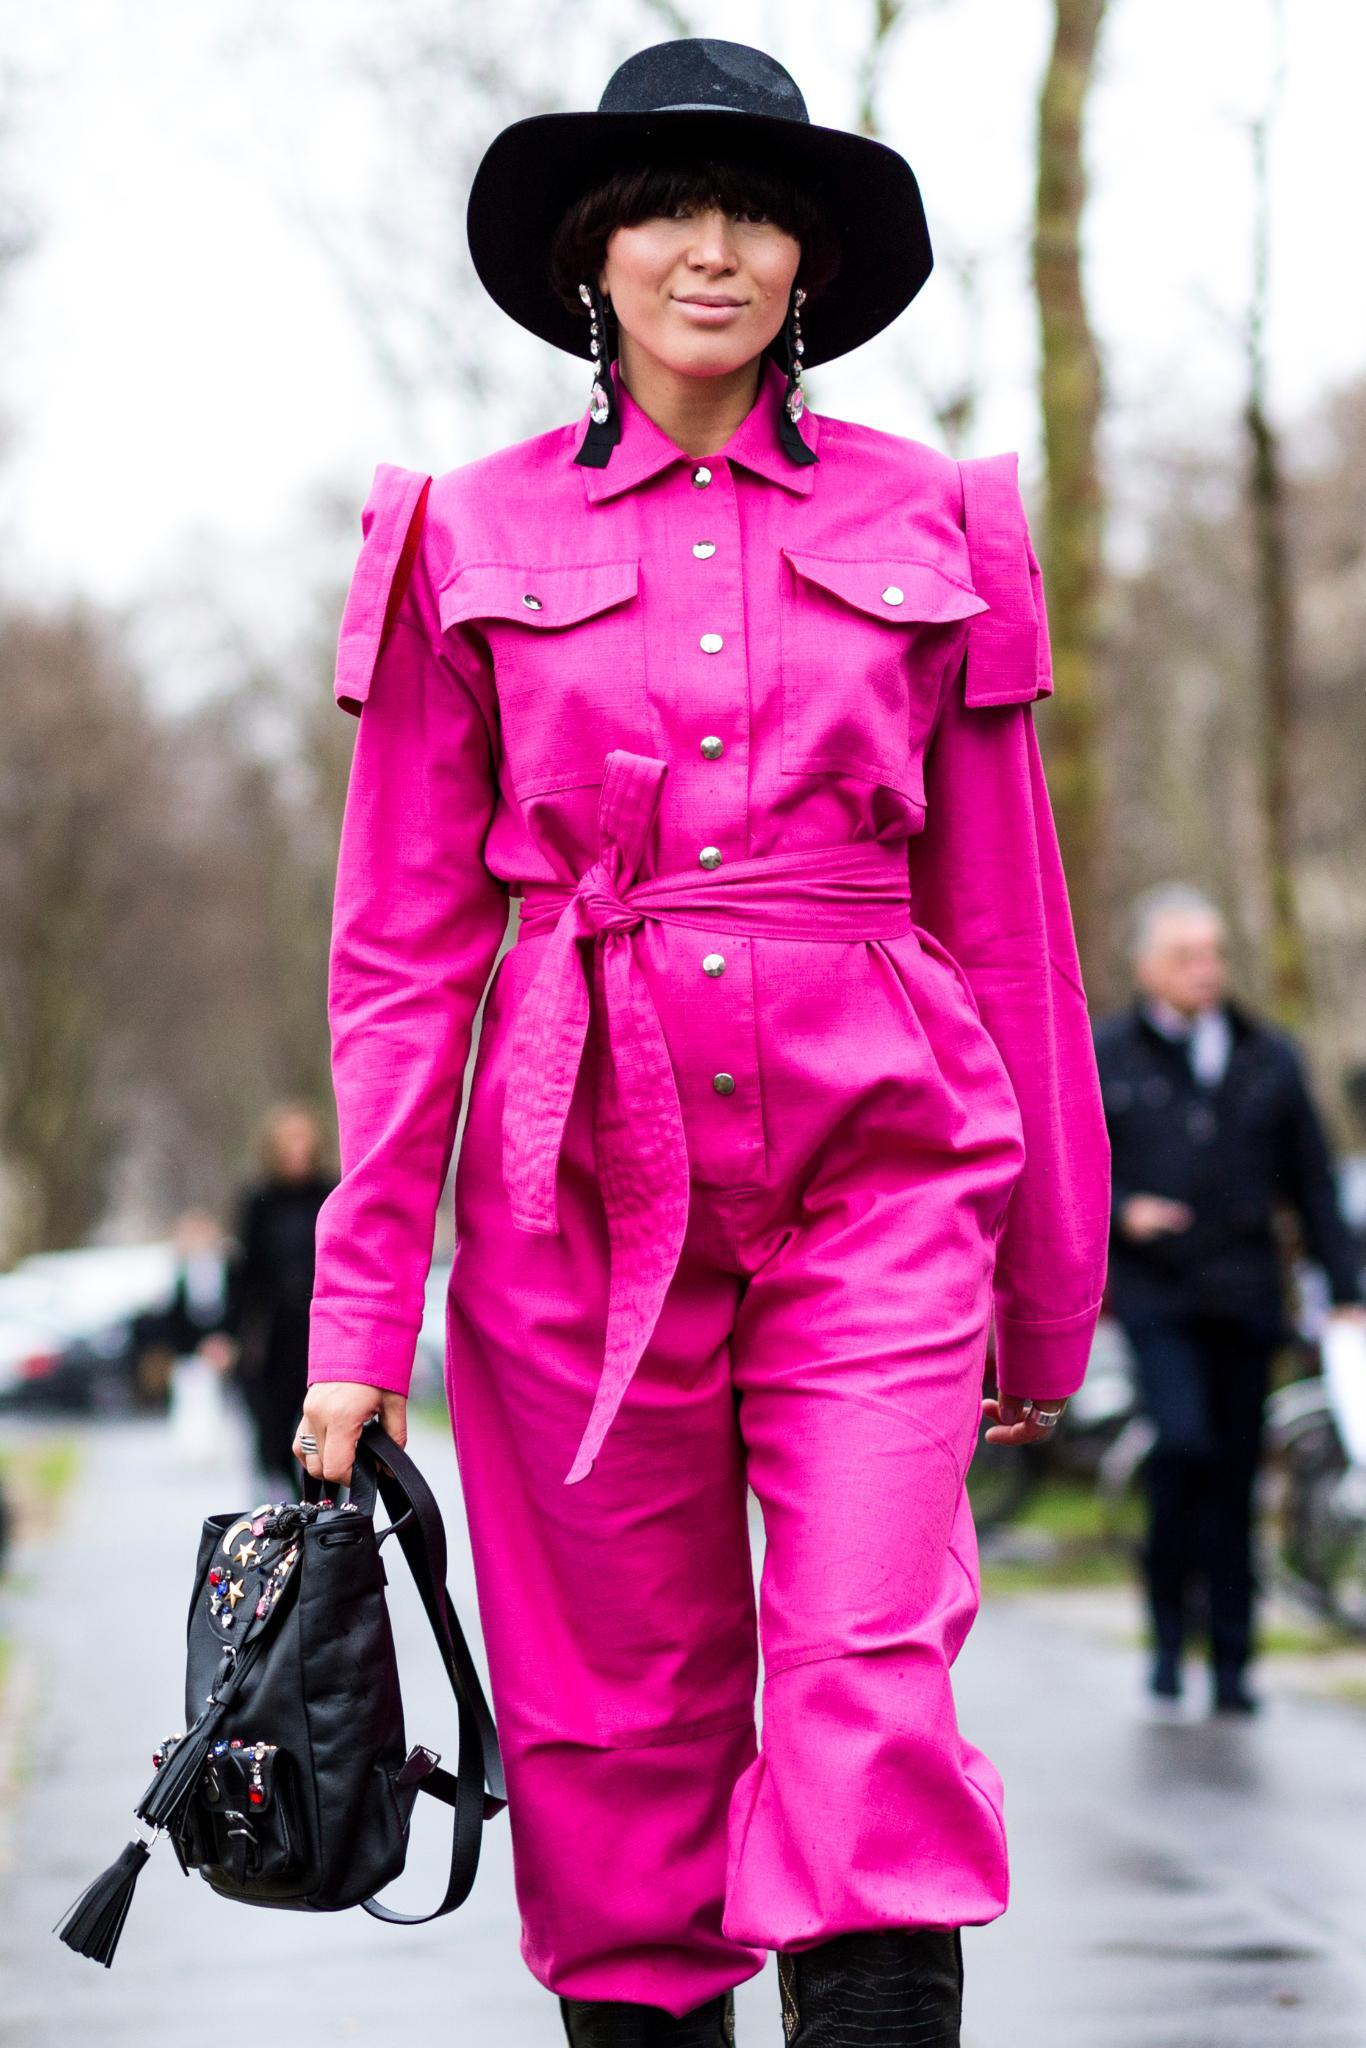 style your hair with hot pink outfits: bowl cut